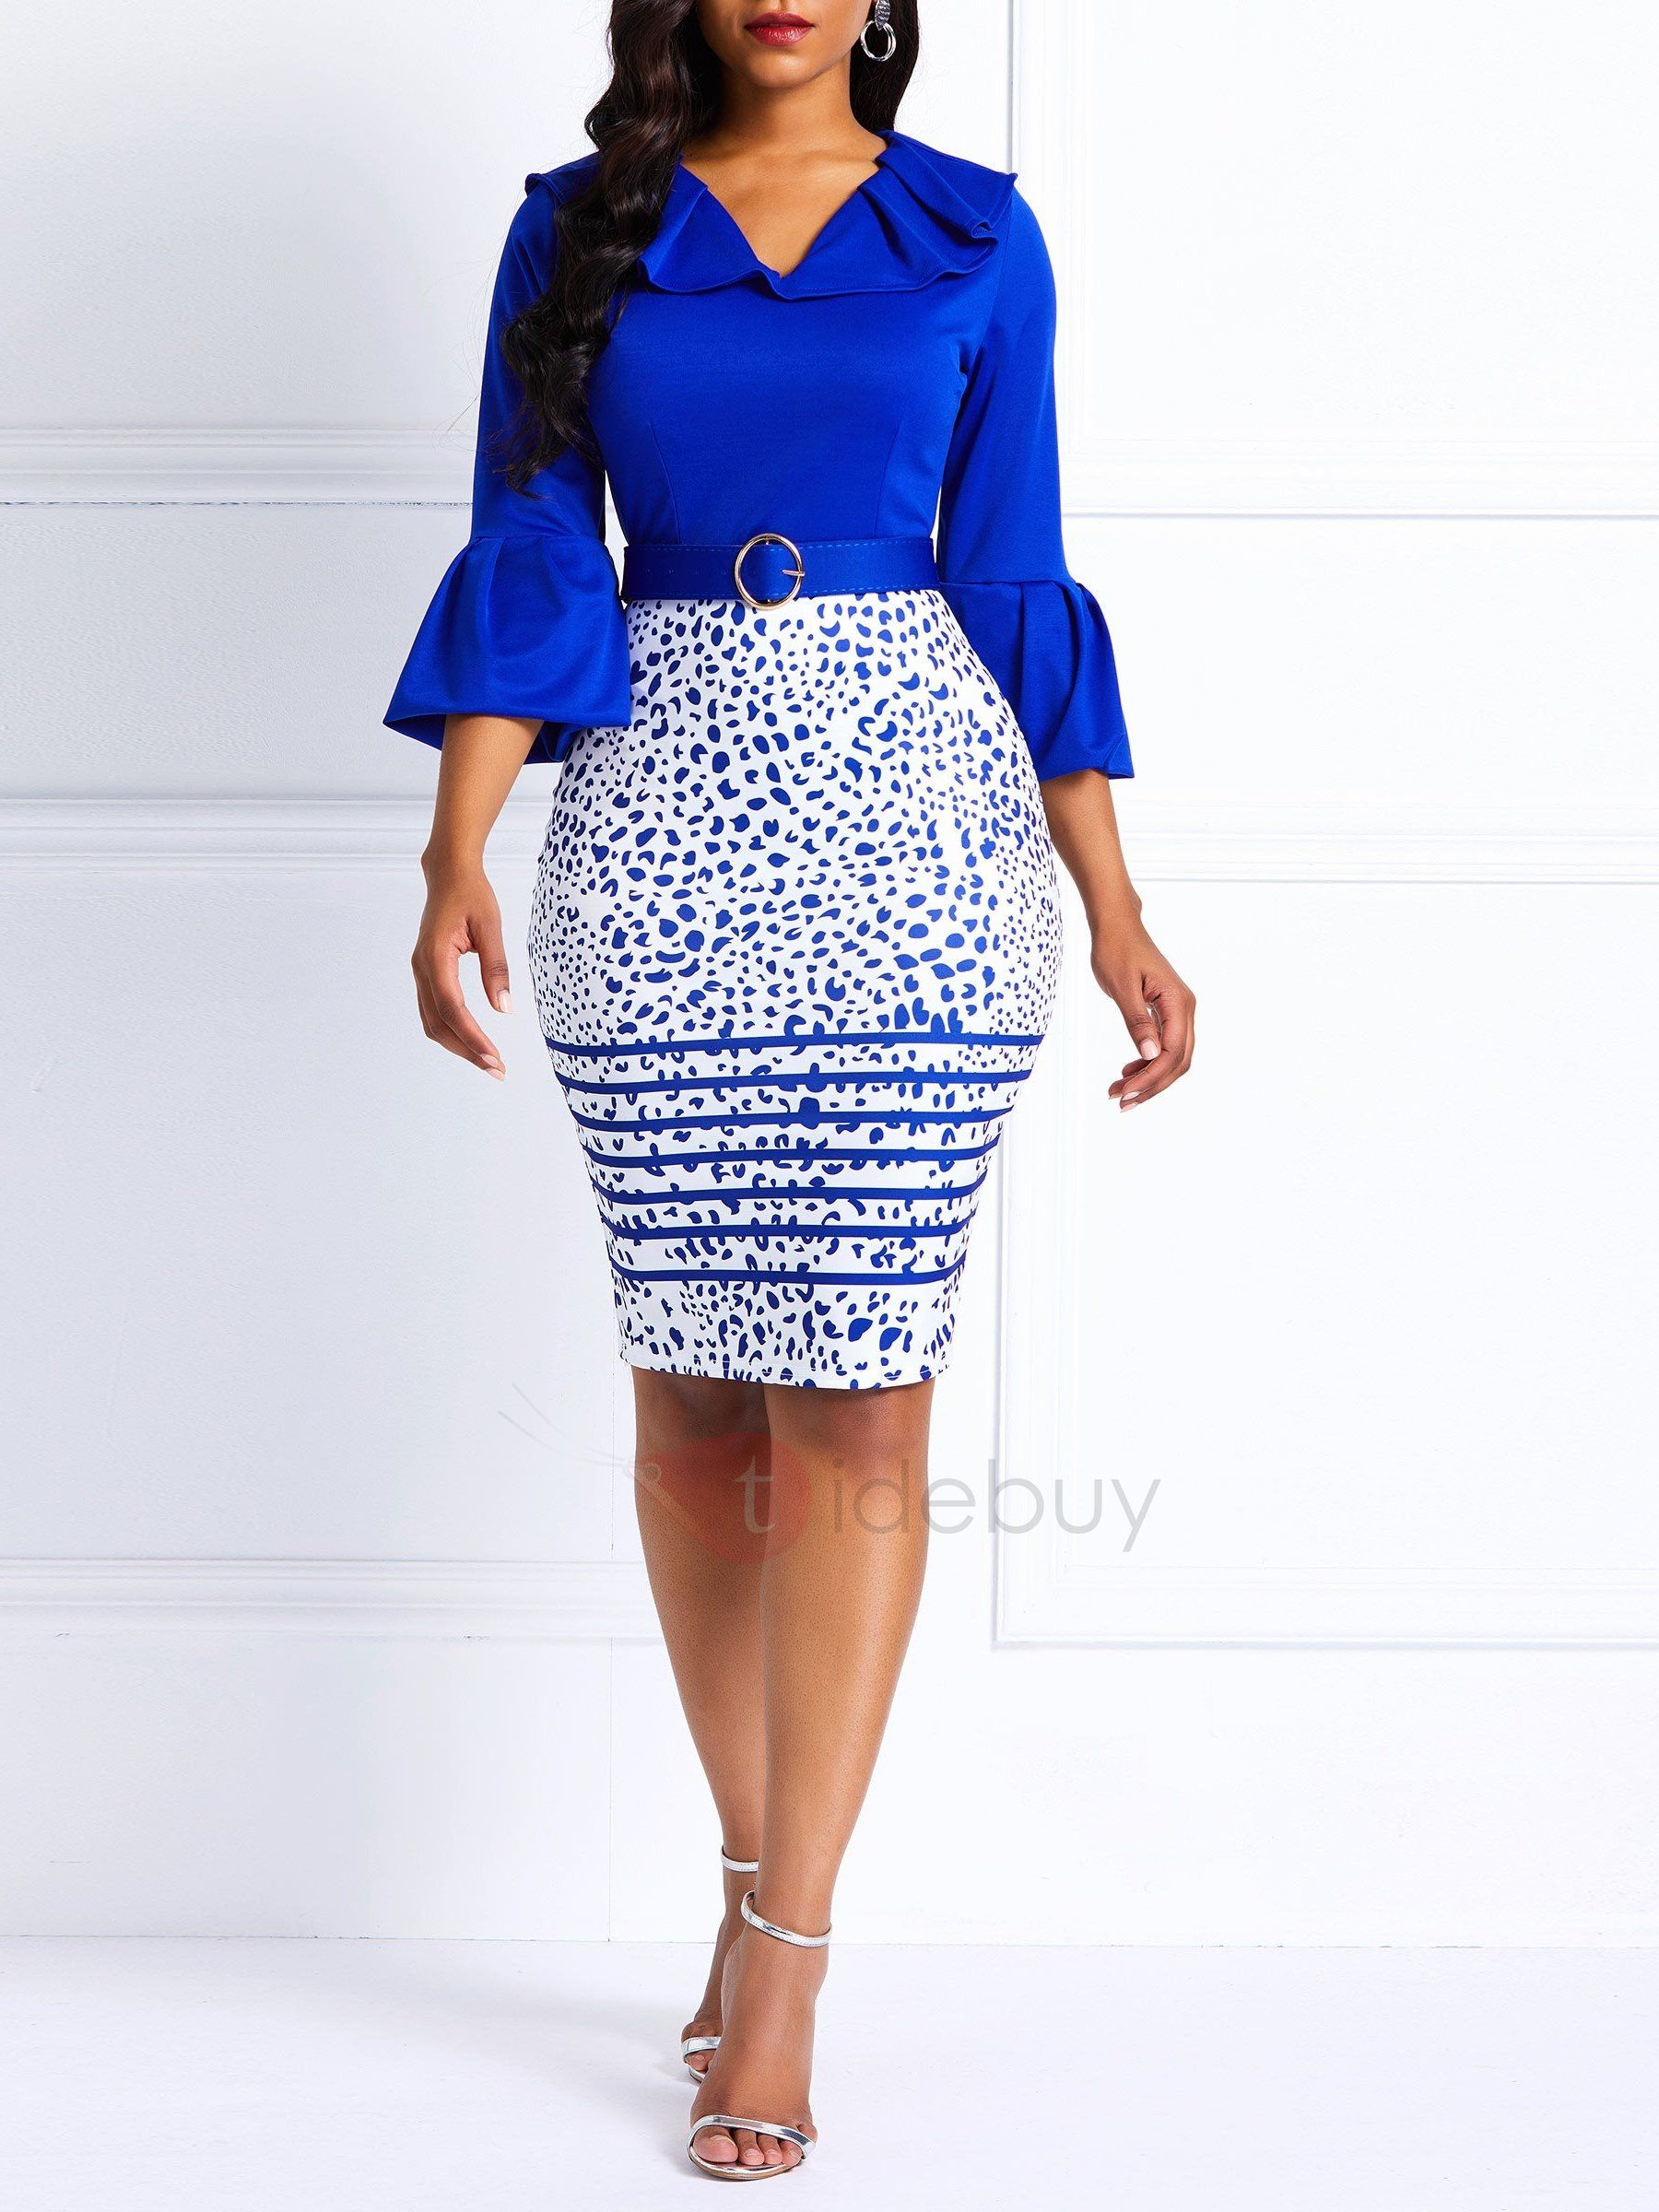 56352d89558c Tidebuy.com Offers High Quality Flare Sleeve Color Blcok Spring Women's  Bodycon Dress, We have more styles for Bodycon Dresses